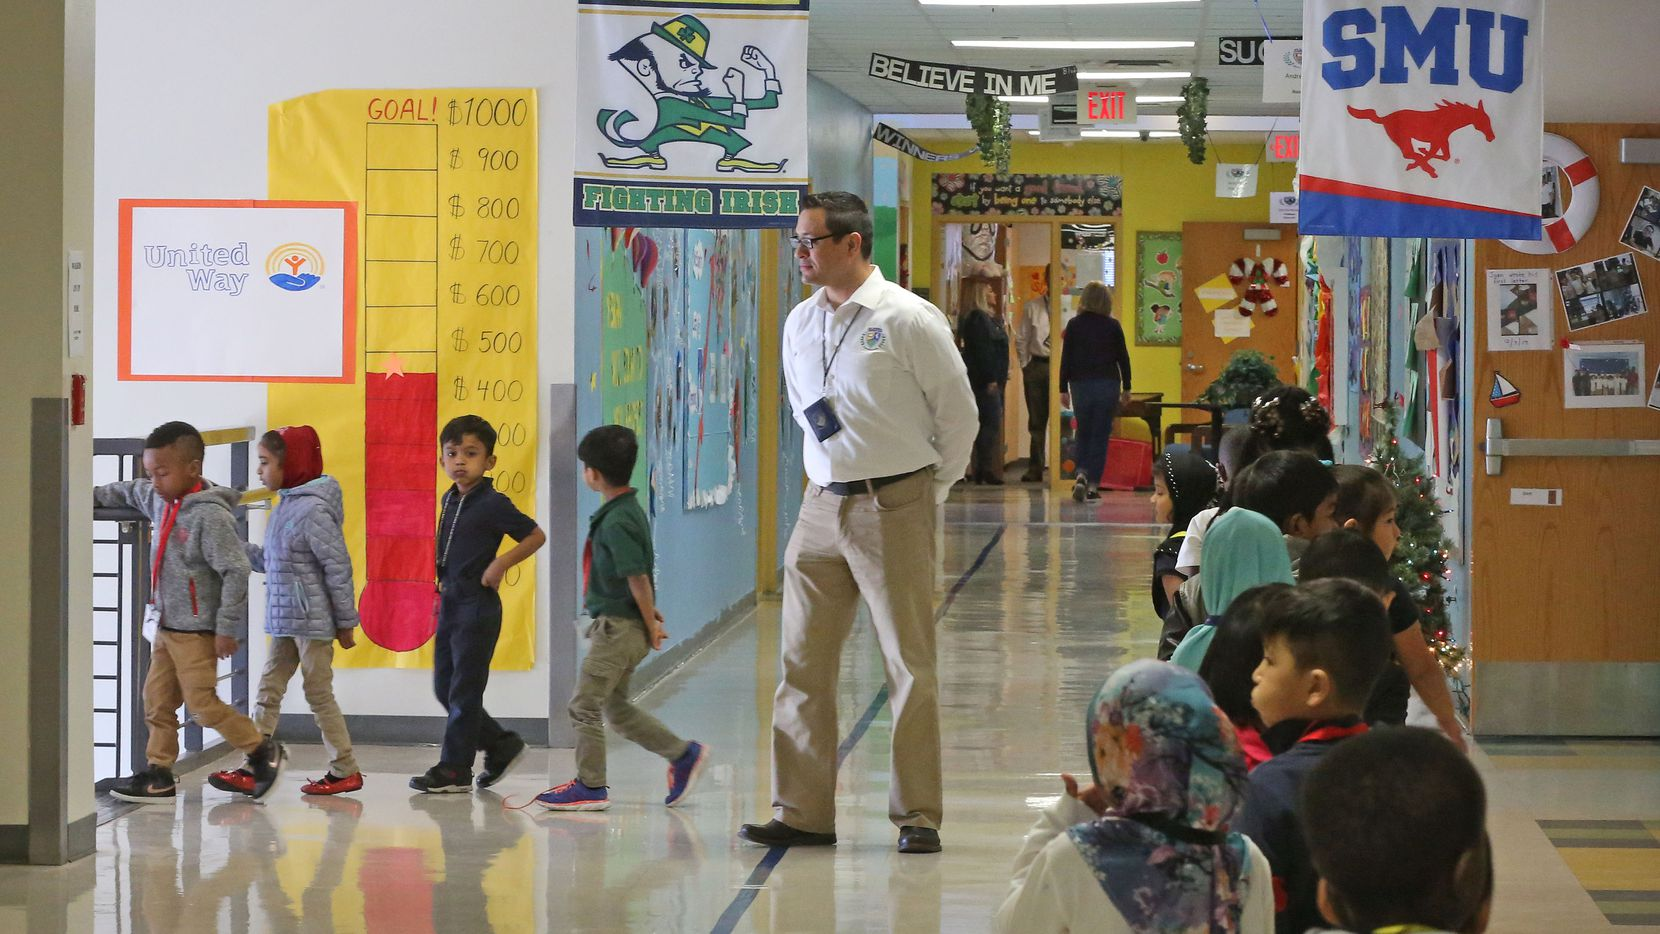 Teacher Assistant Adrian Rivera watches as students make their way through the hallways at Dallas ISD's McShan Elementary in Vickery Meadow.